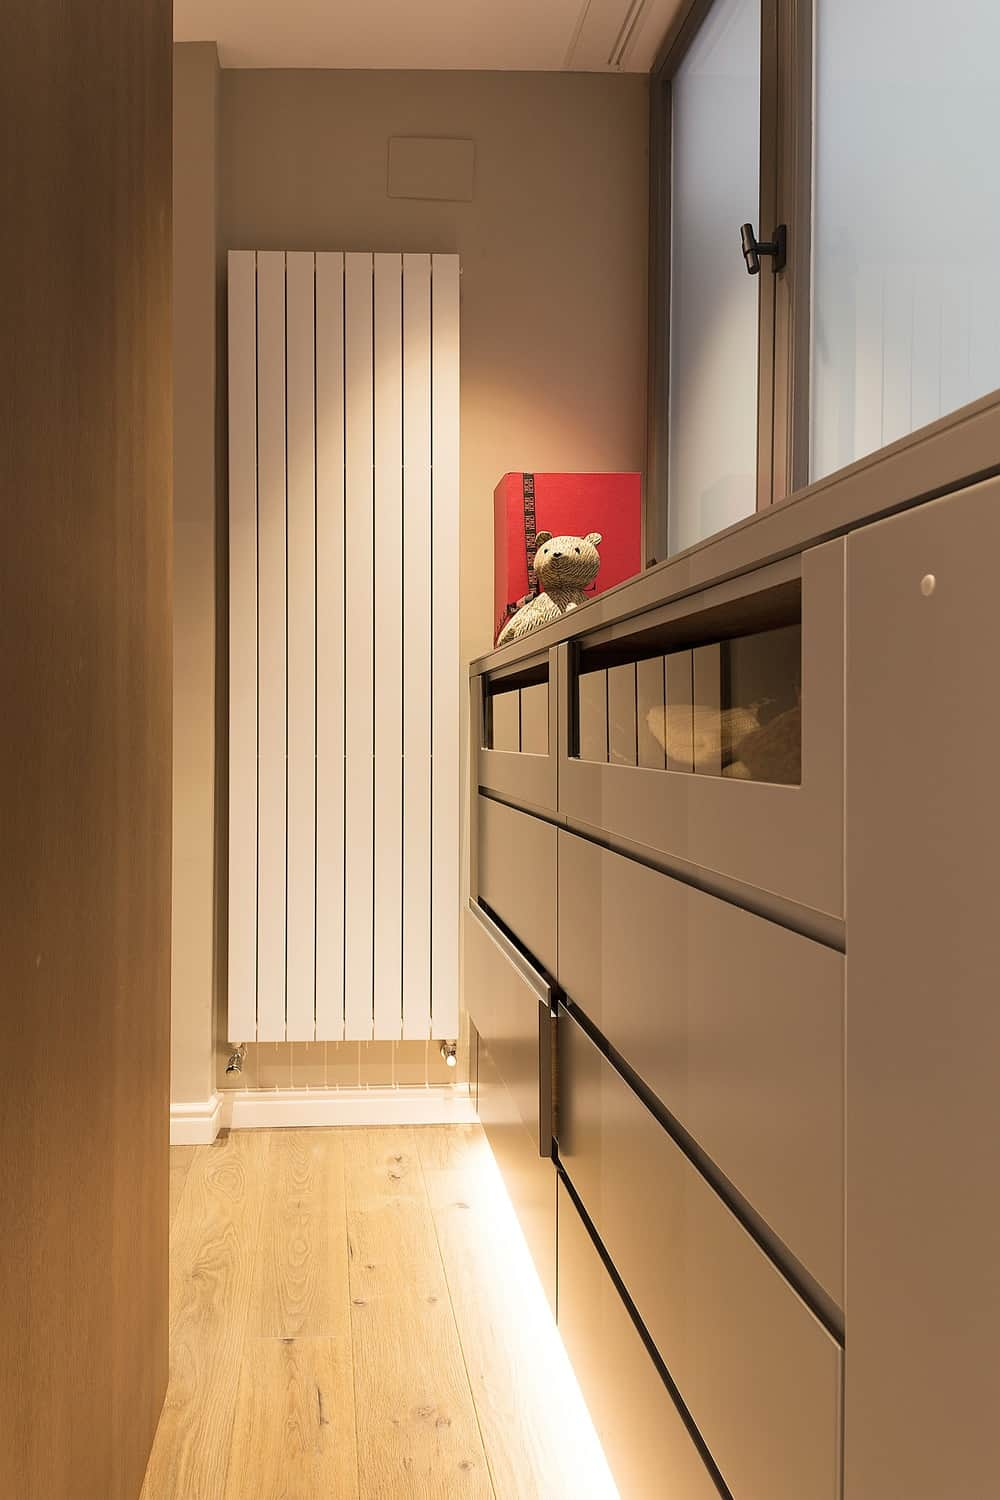 This is a close look at the set of drawers of the walk-in closet behind the bed.